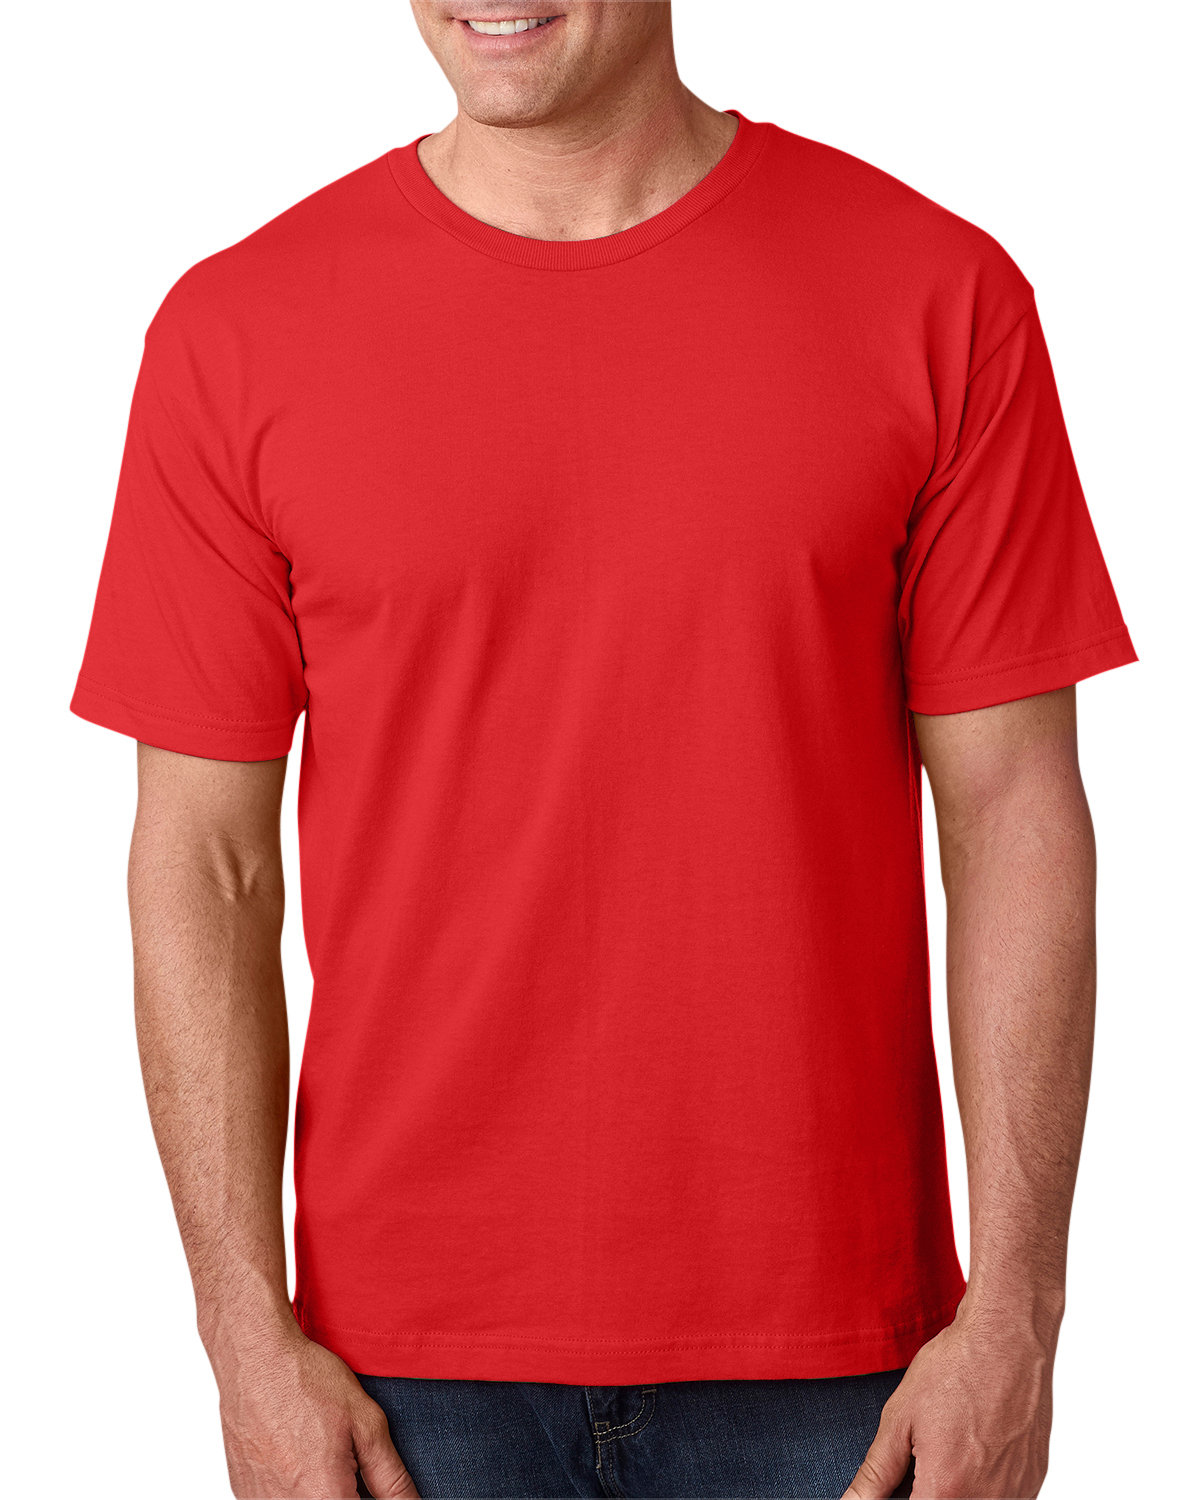 Bayside Adult 5.4 oz., 100% Cotton T-Shirt RED